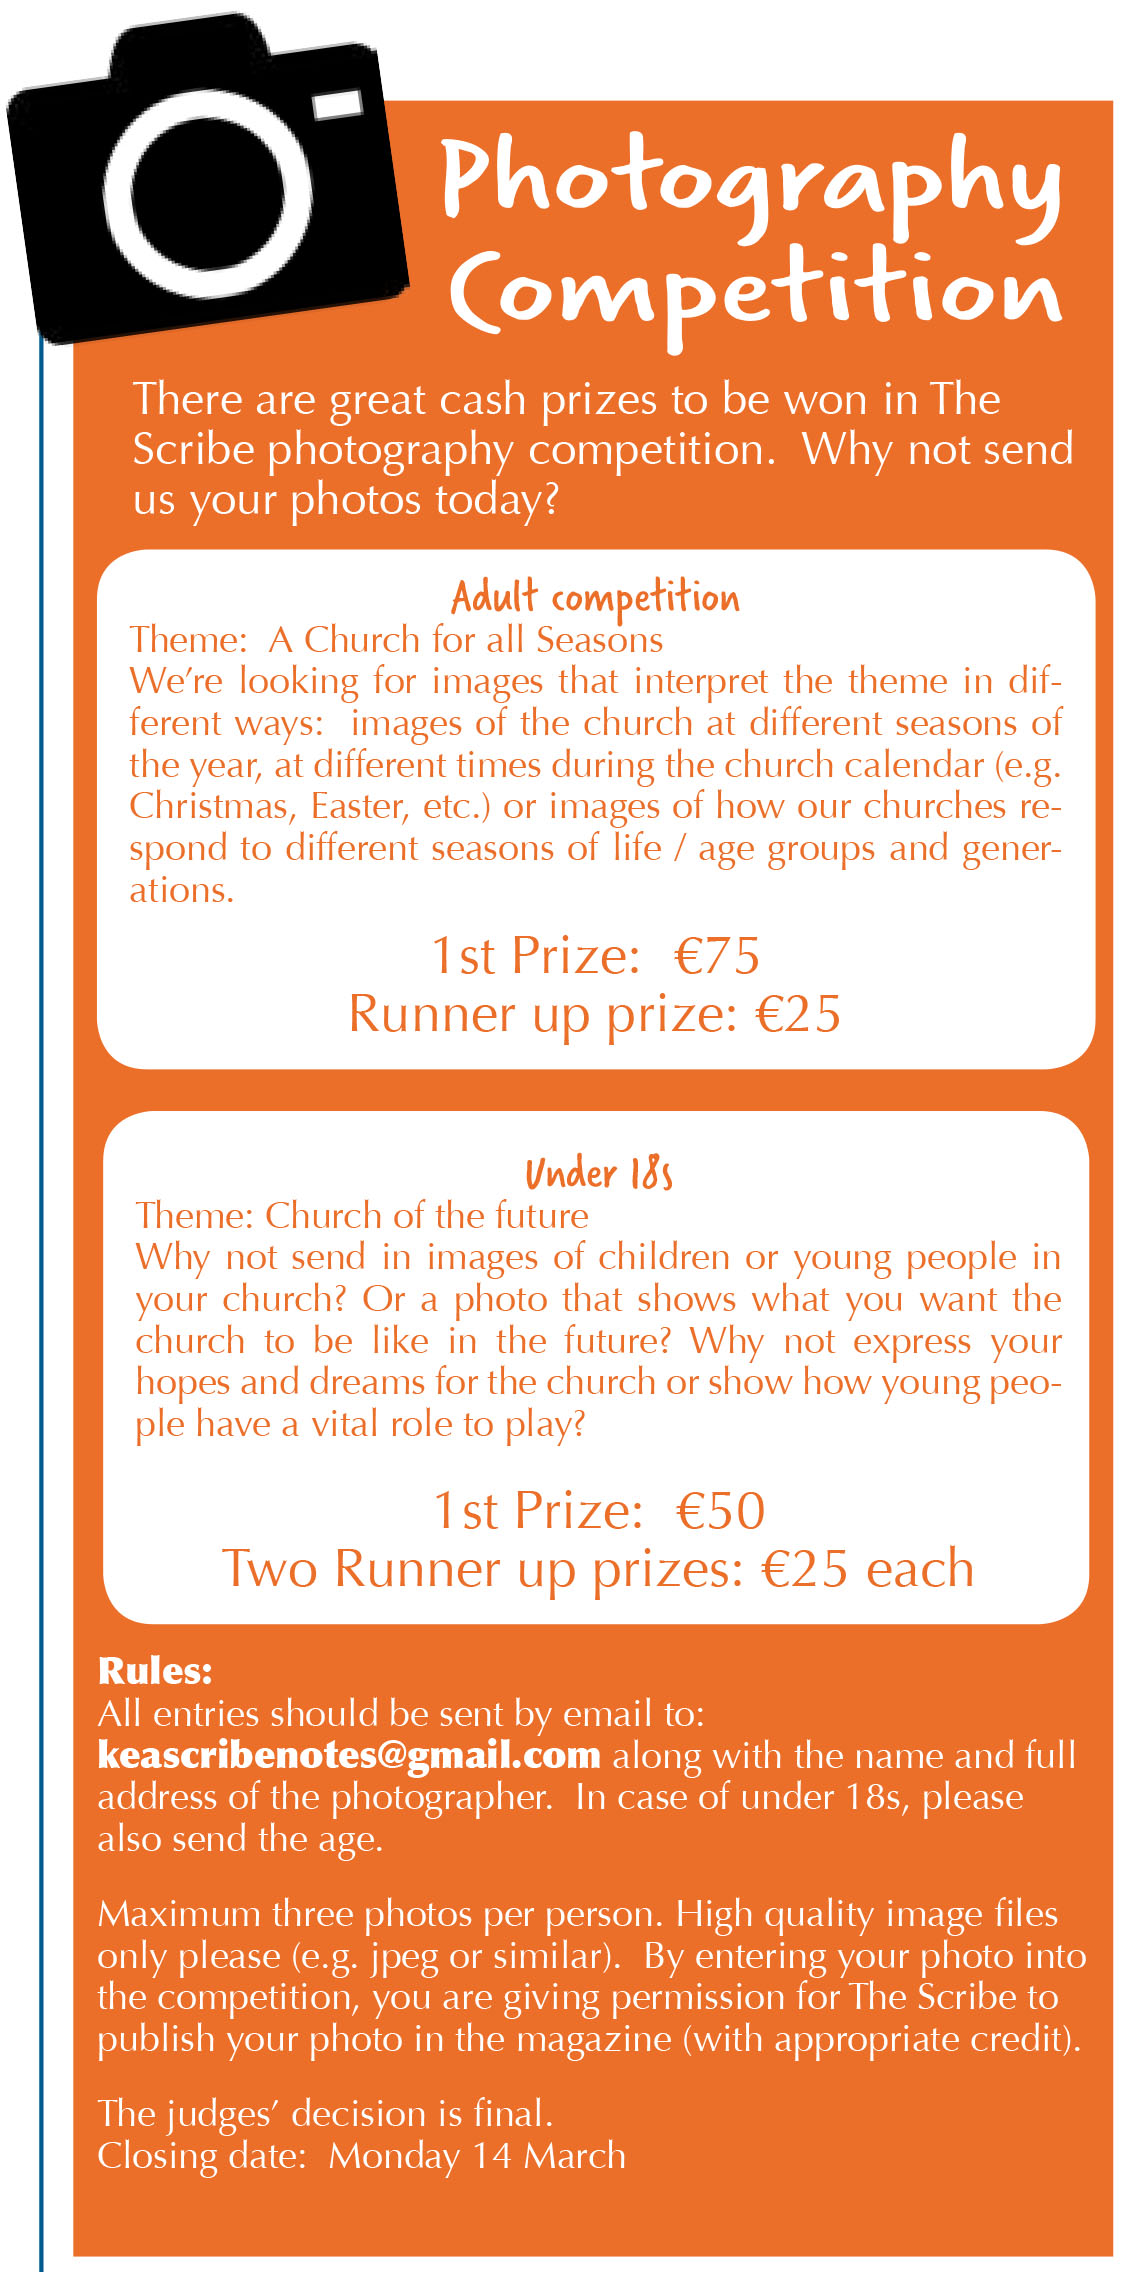 There are great cash prizes to be won in The Scribe photography competition. Why not send us your photos today?